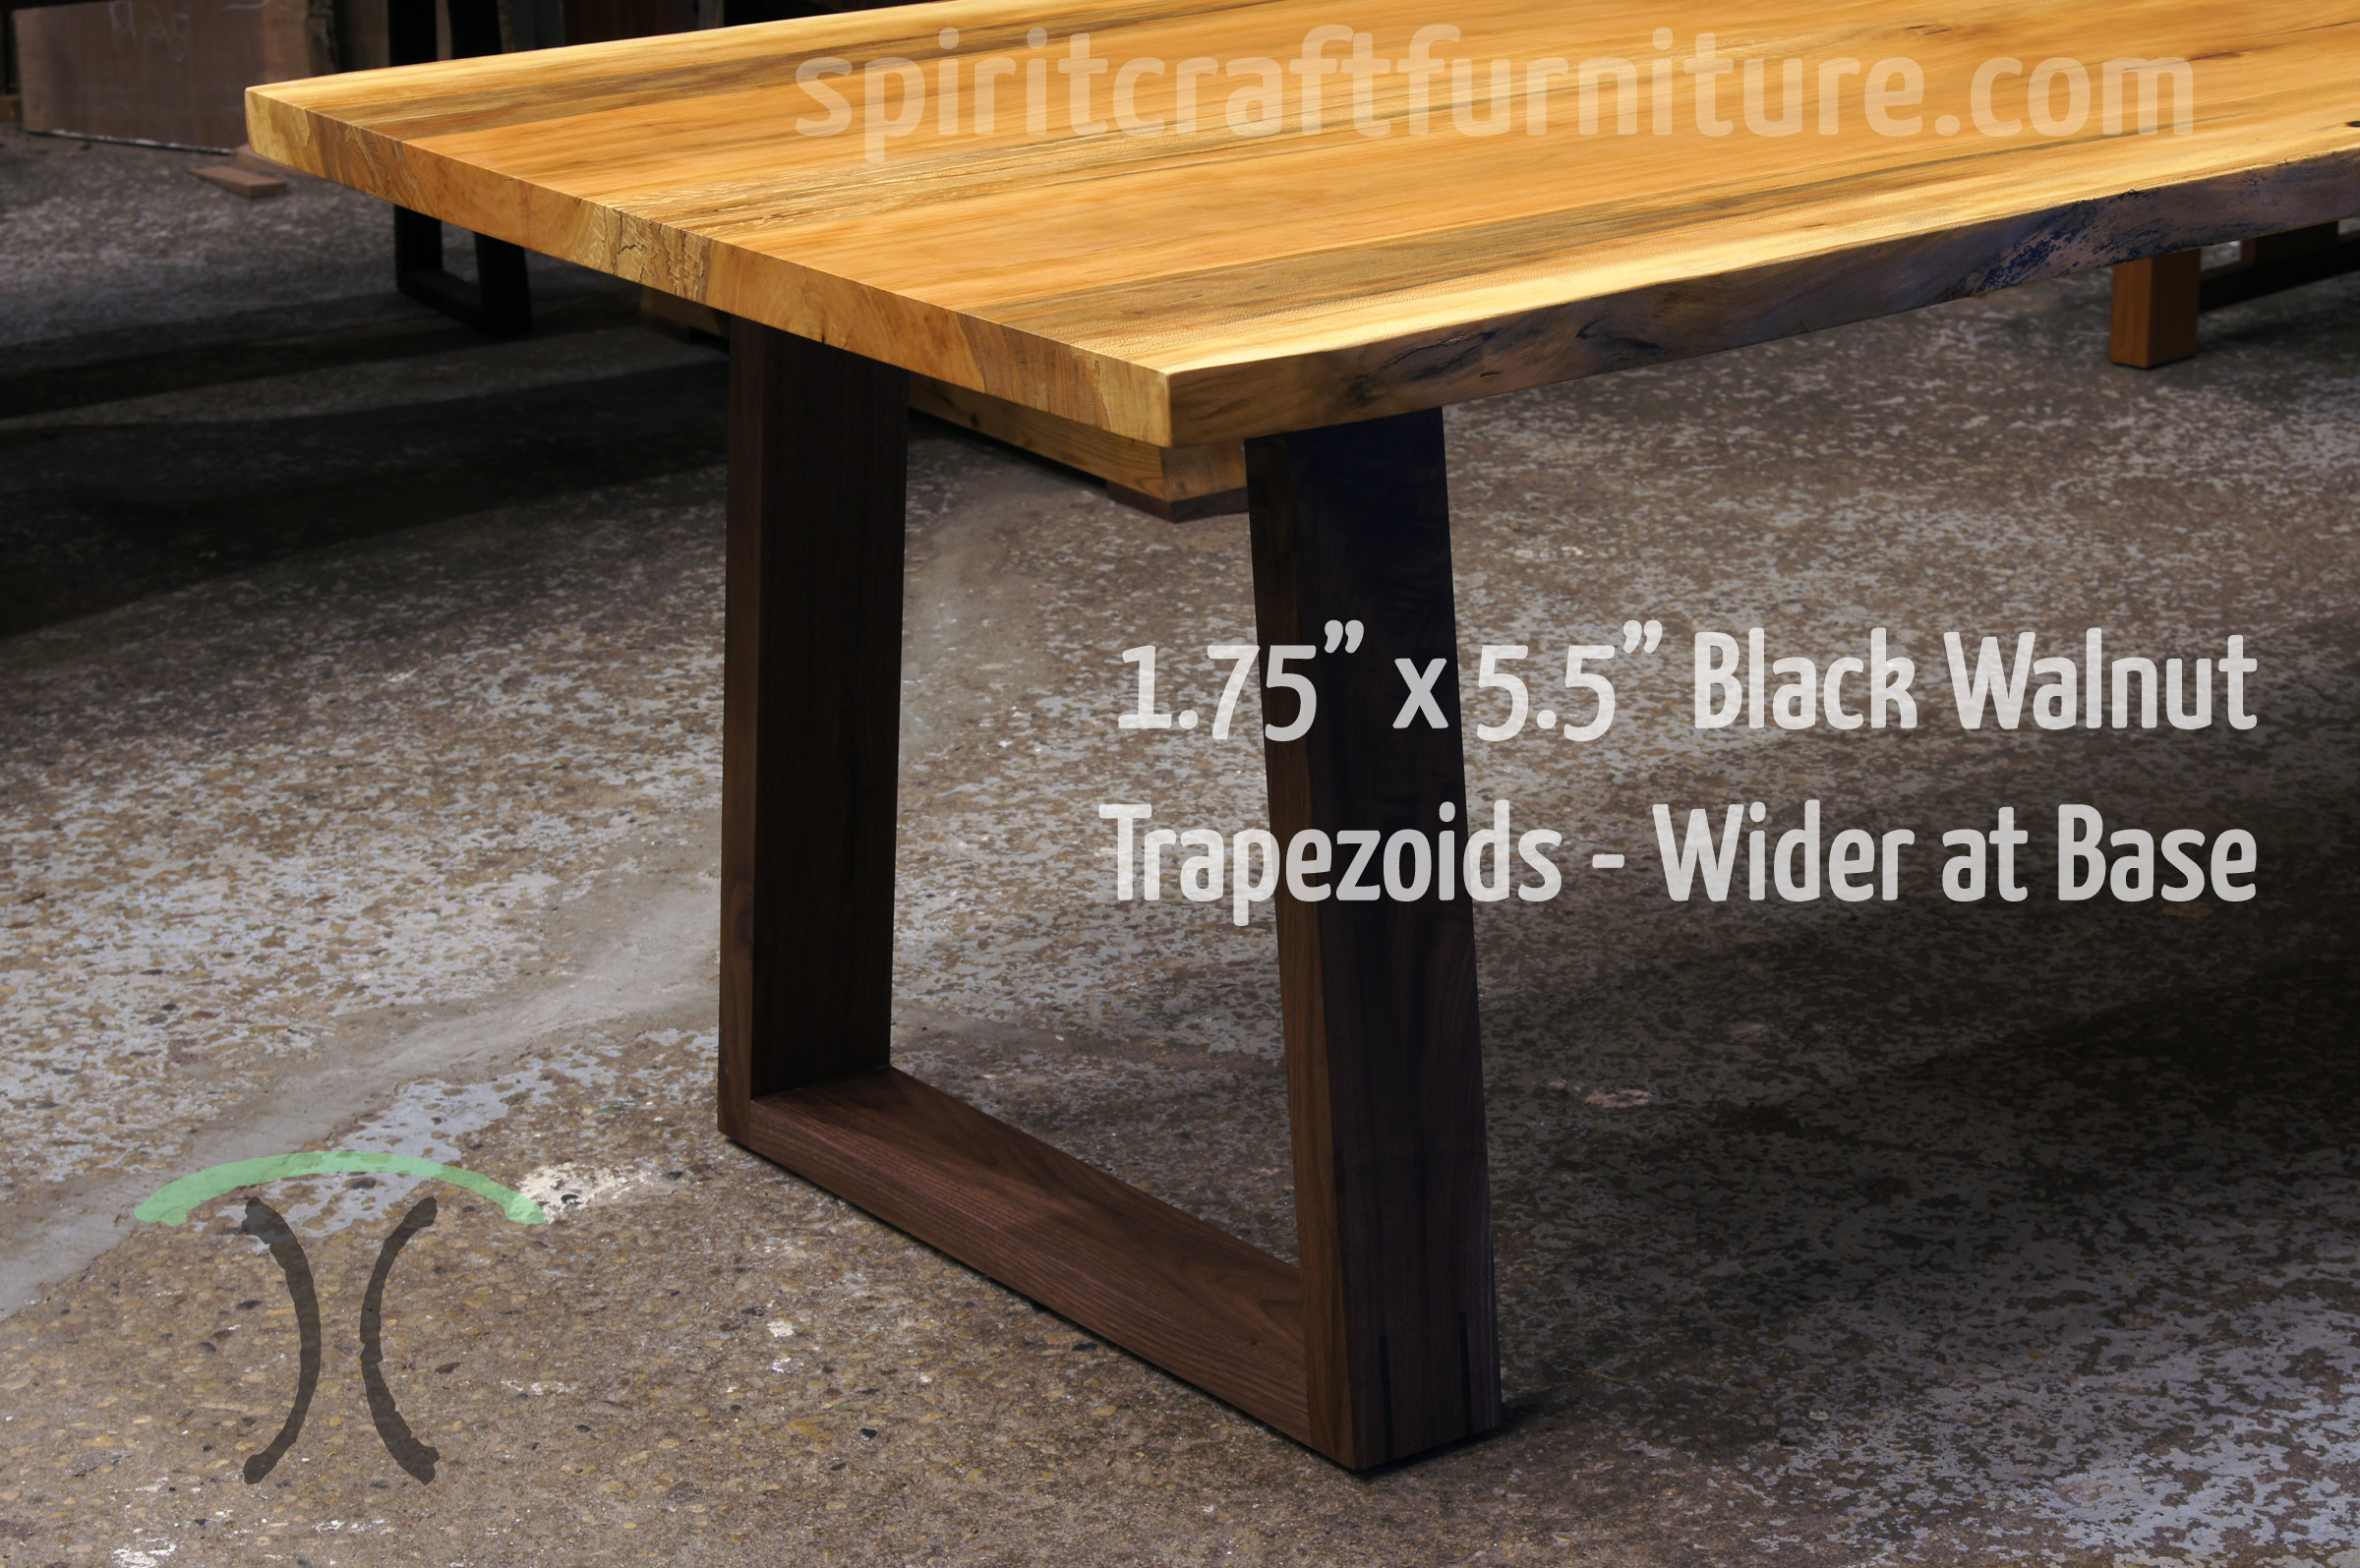 Solid Black Walnut Hardwood Trapezoid Legs, Mitered and Splined with Black Walnut Live Edge Table Top, Mid Century Style and Heirloom Quality.